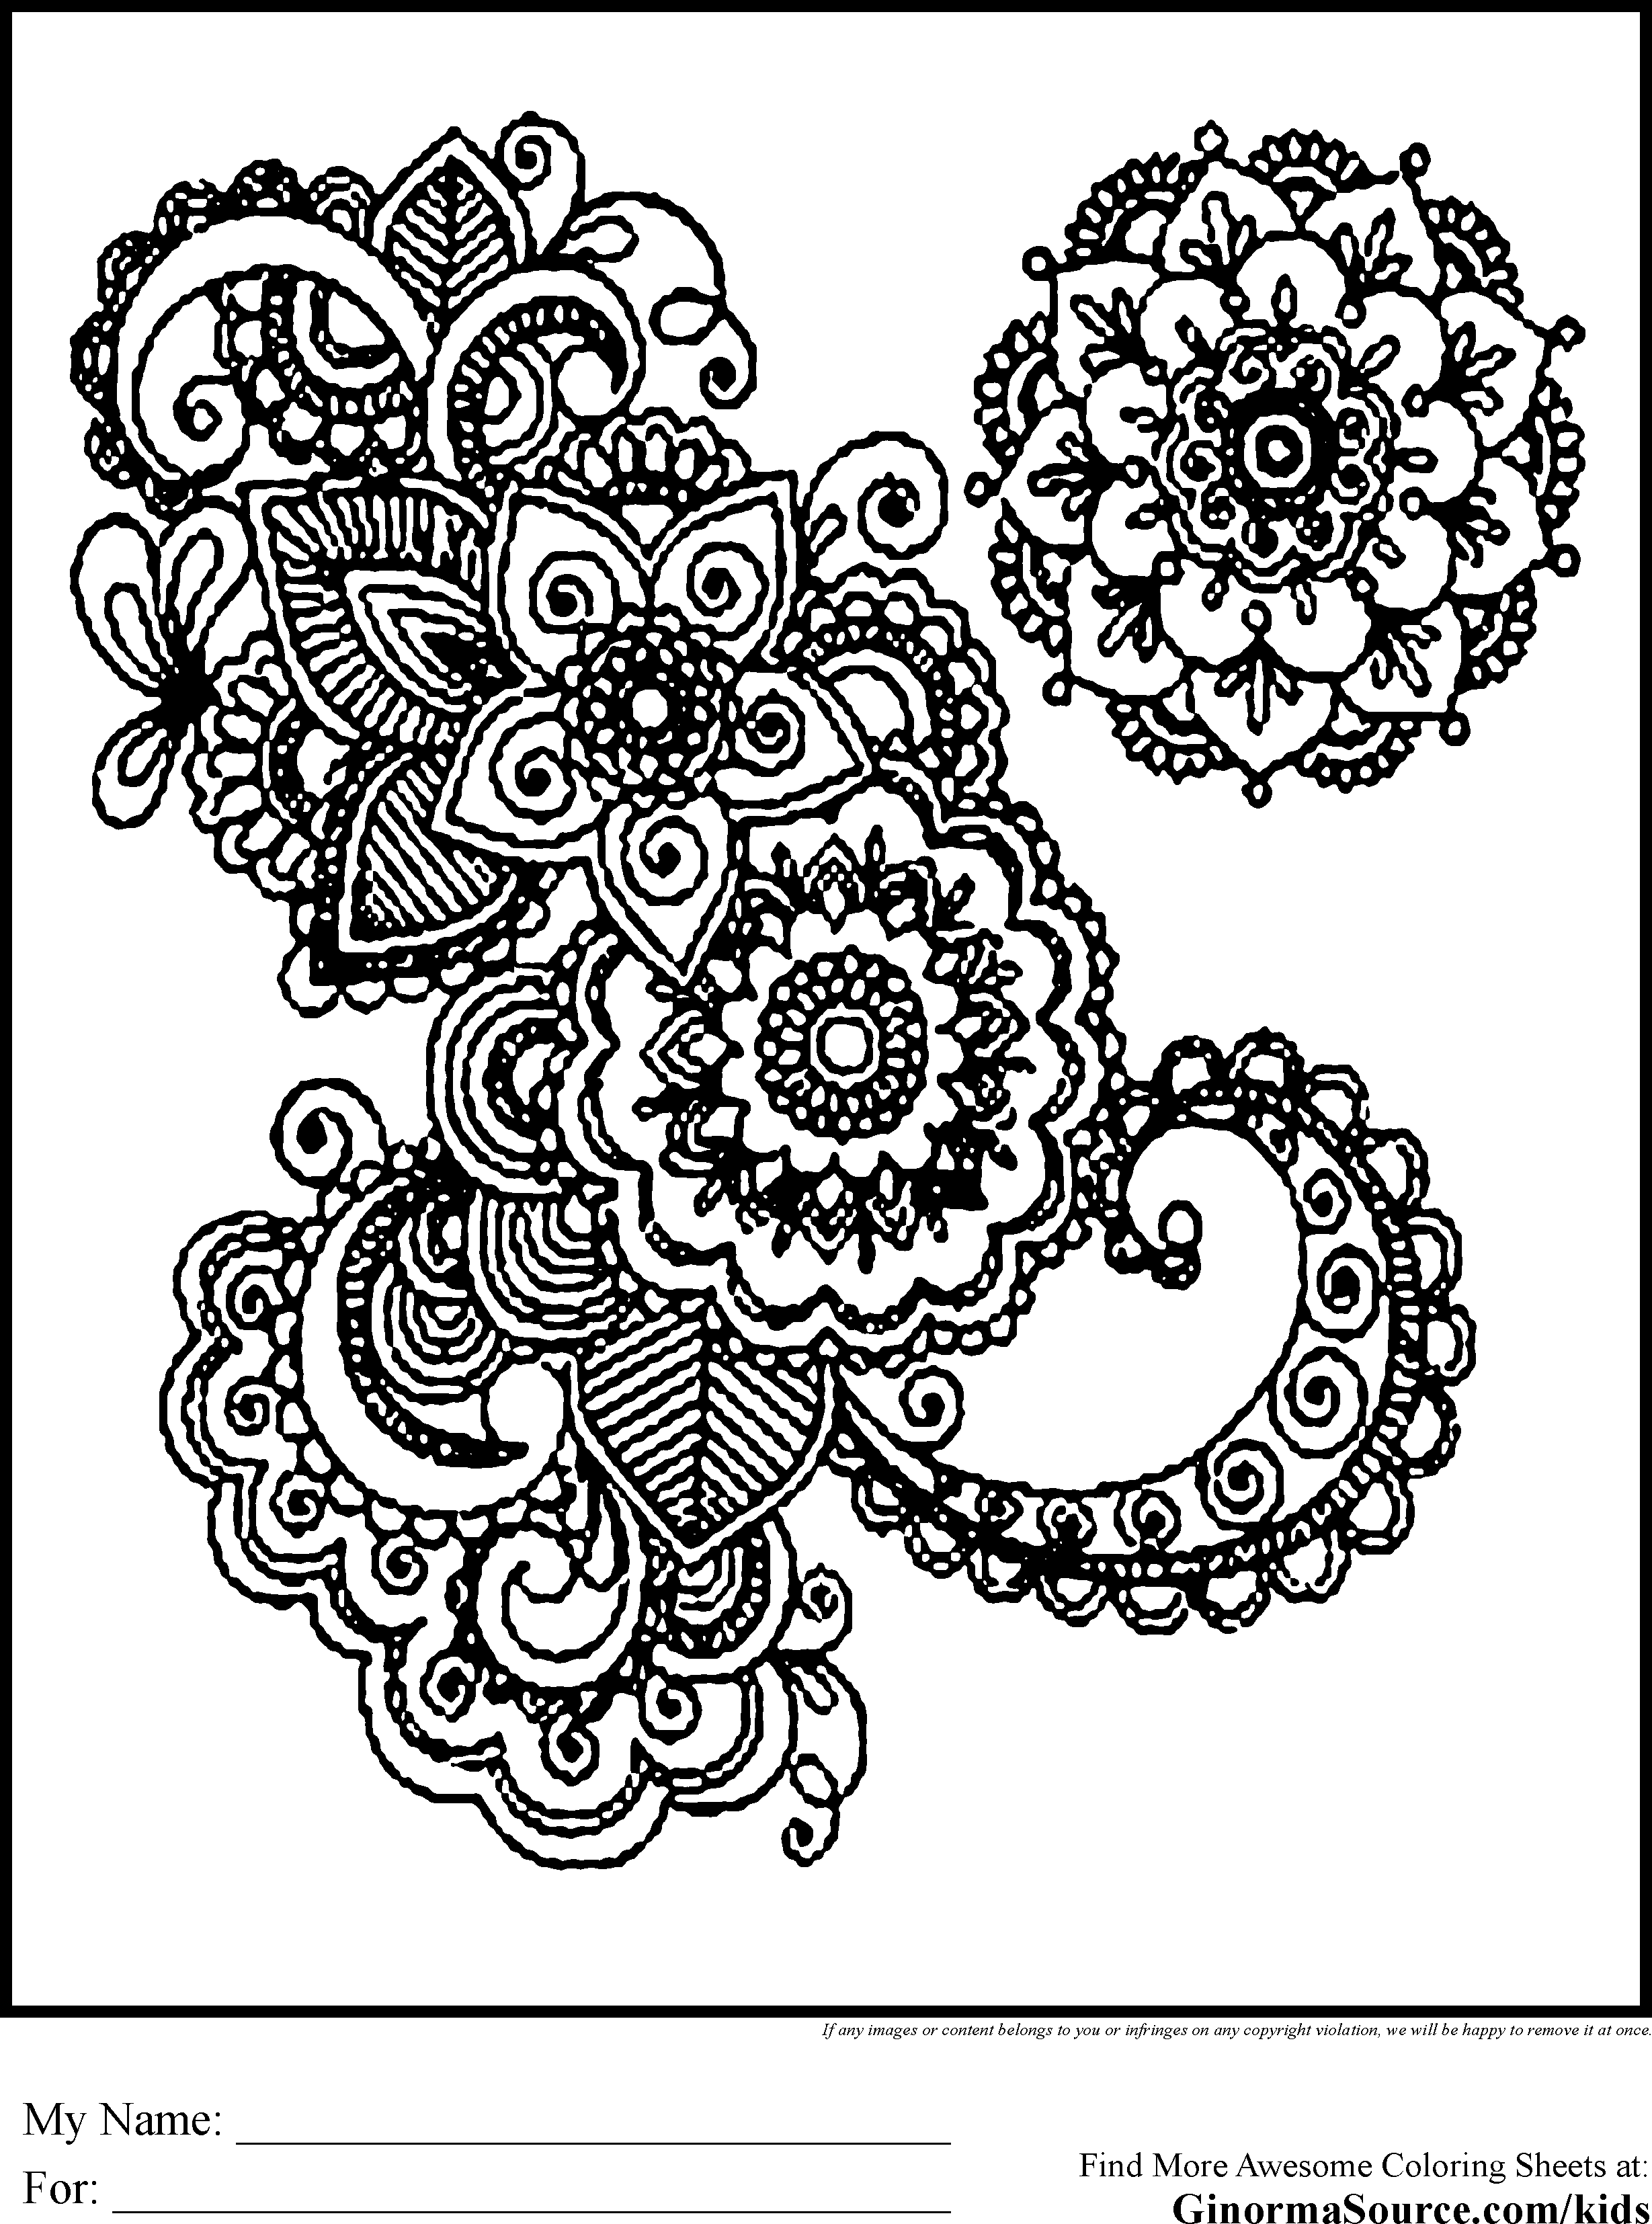 coloring pages for adults advanced coloring pages ginormasource kids - Intricate Coloring Pages Kids